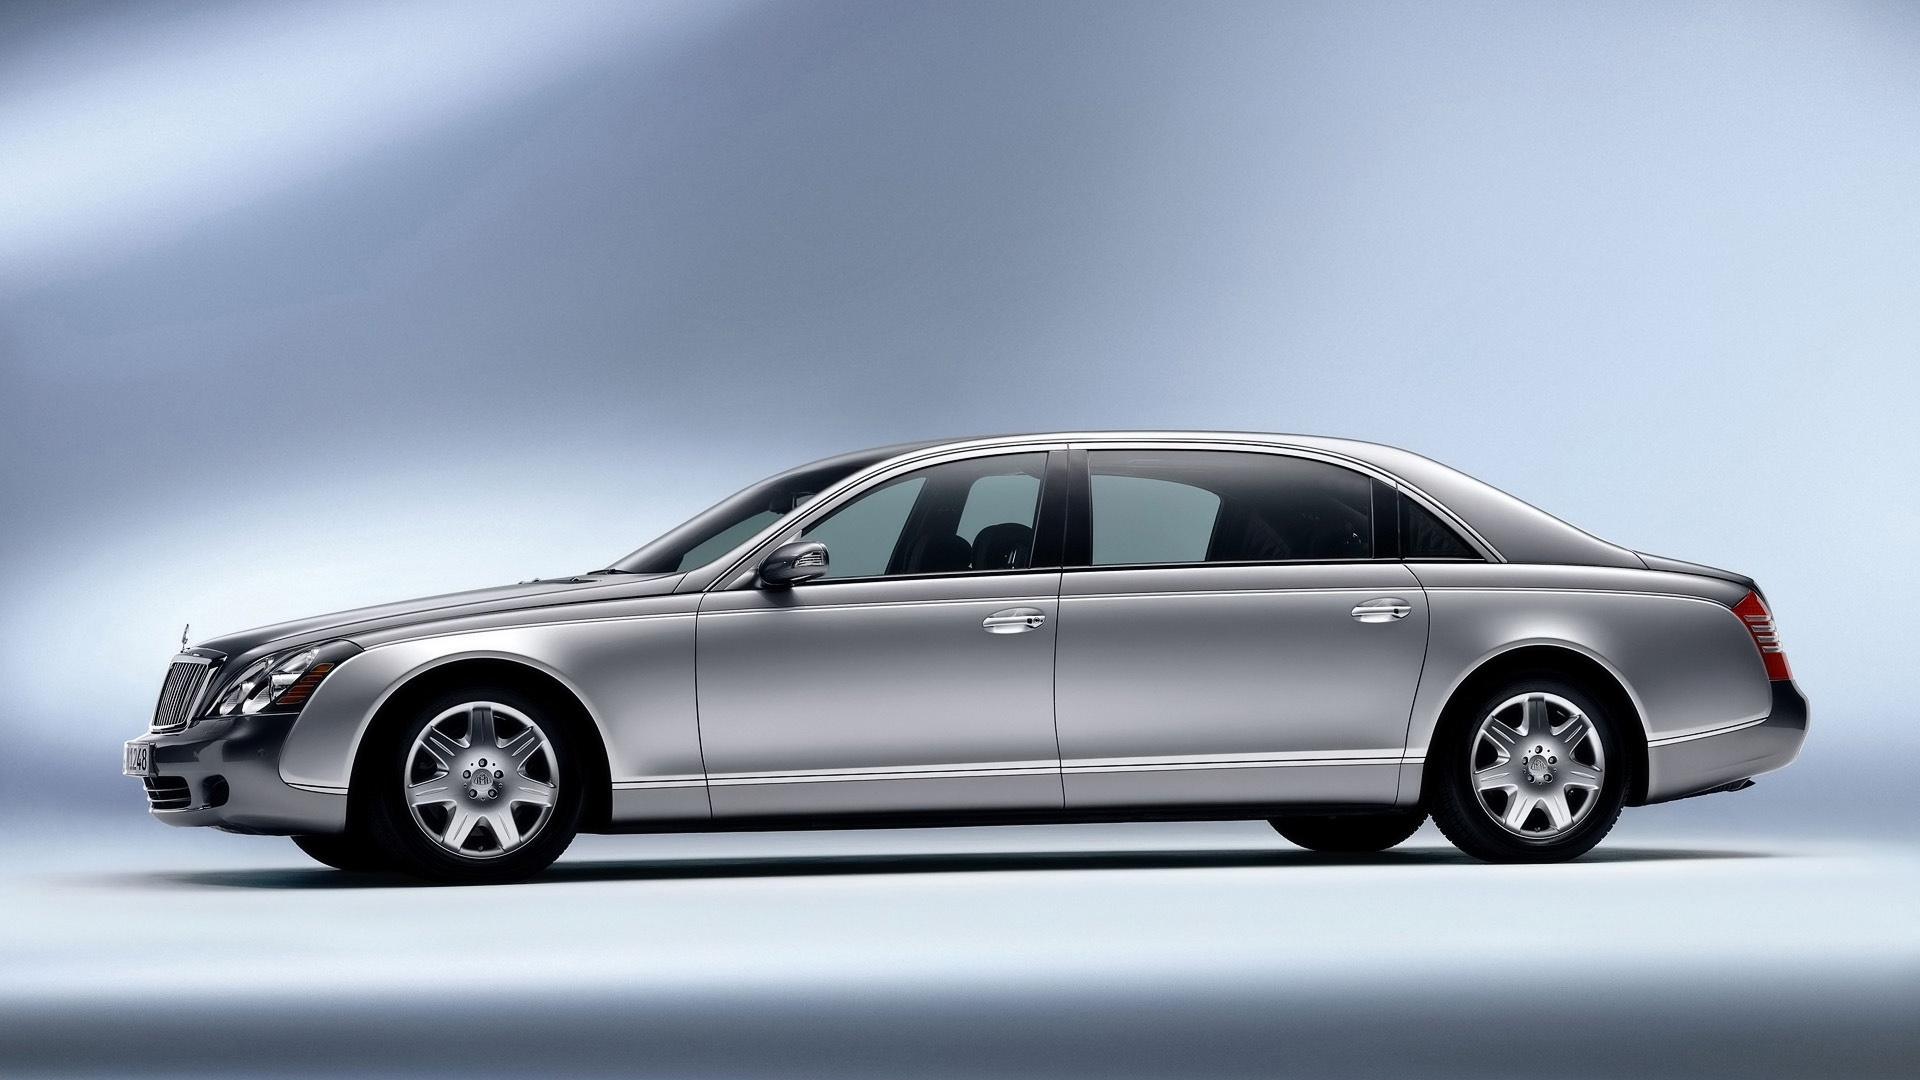 Maybach 62 Left for 1920 x 1080 HDTV 1080p resolution